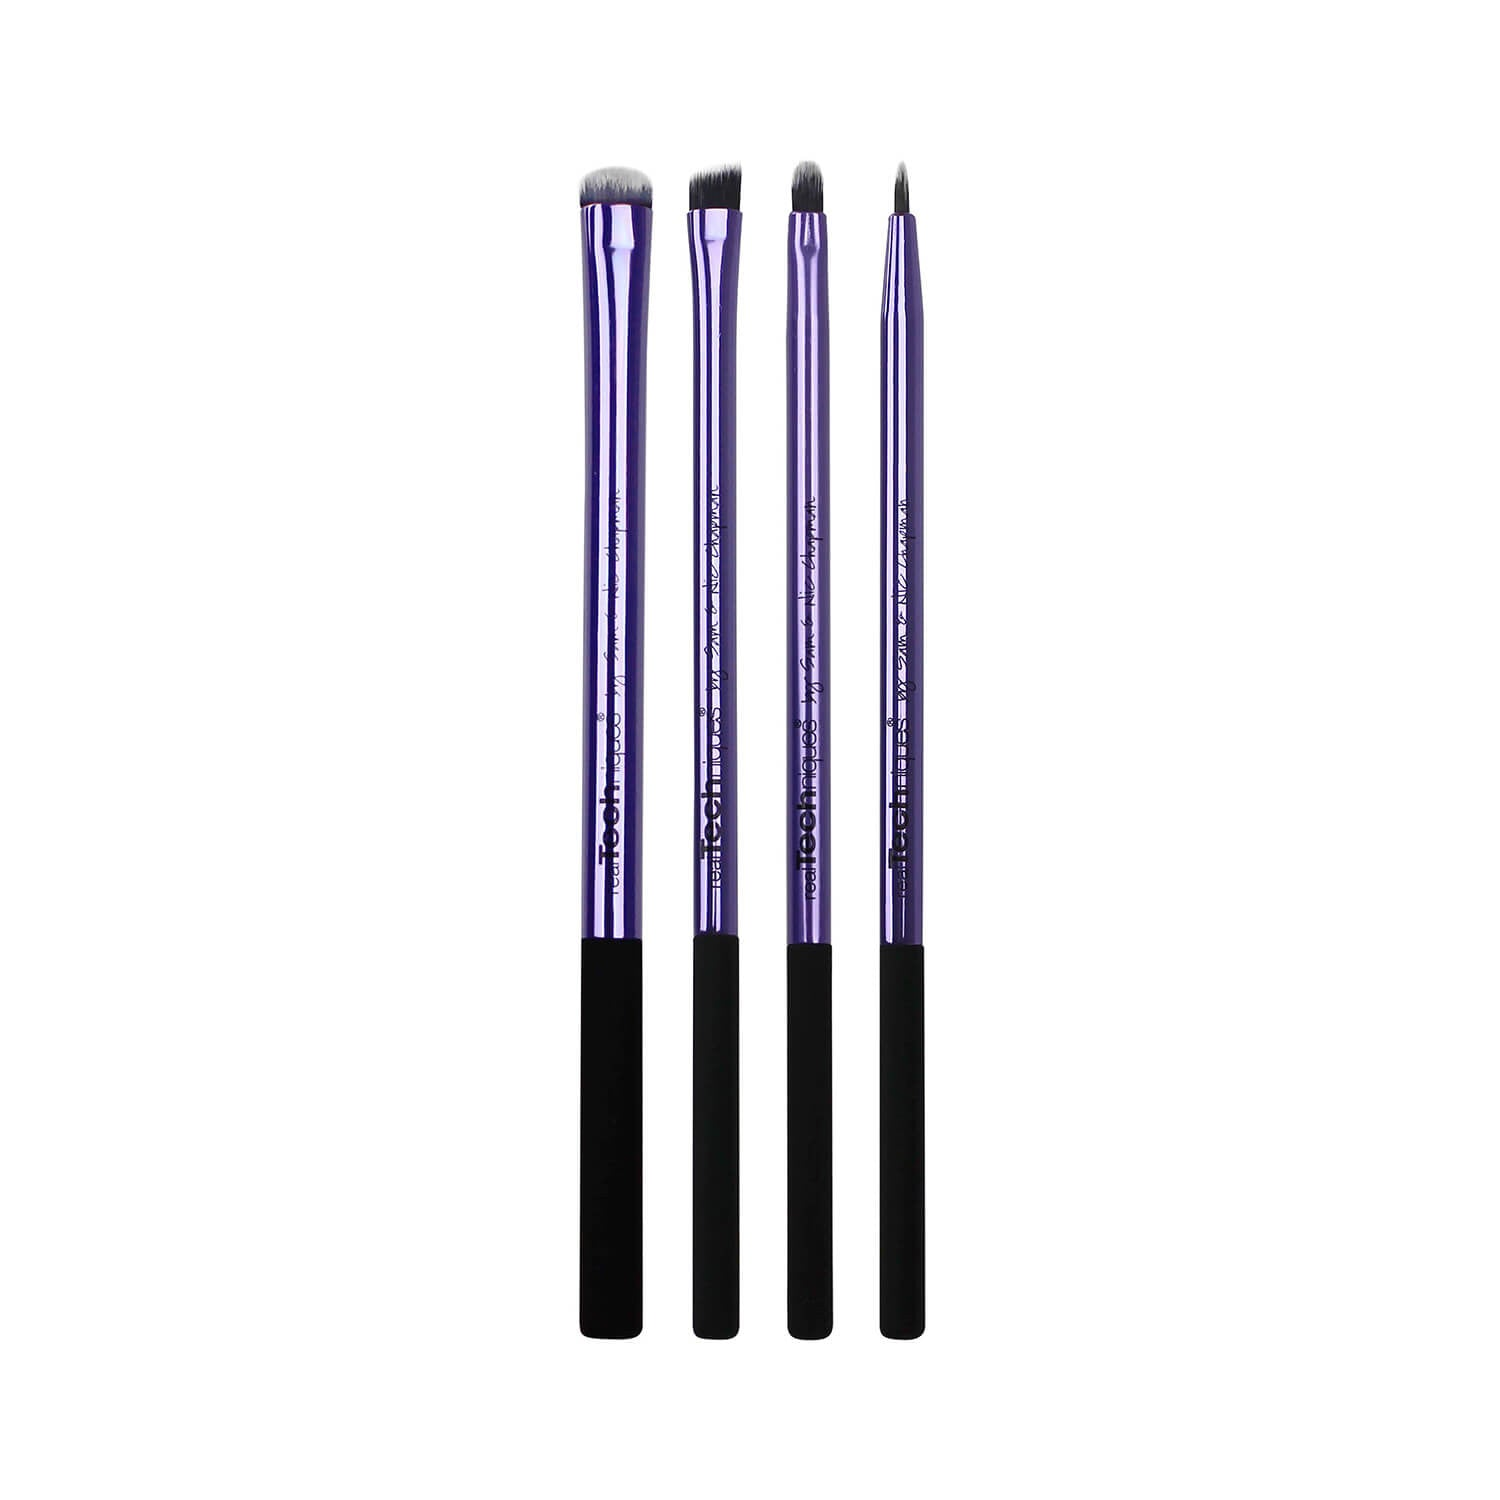 Real Techniques eyeliner set out of package